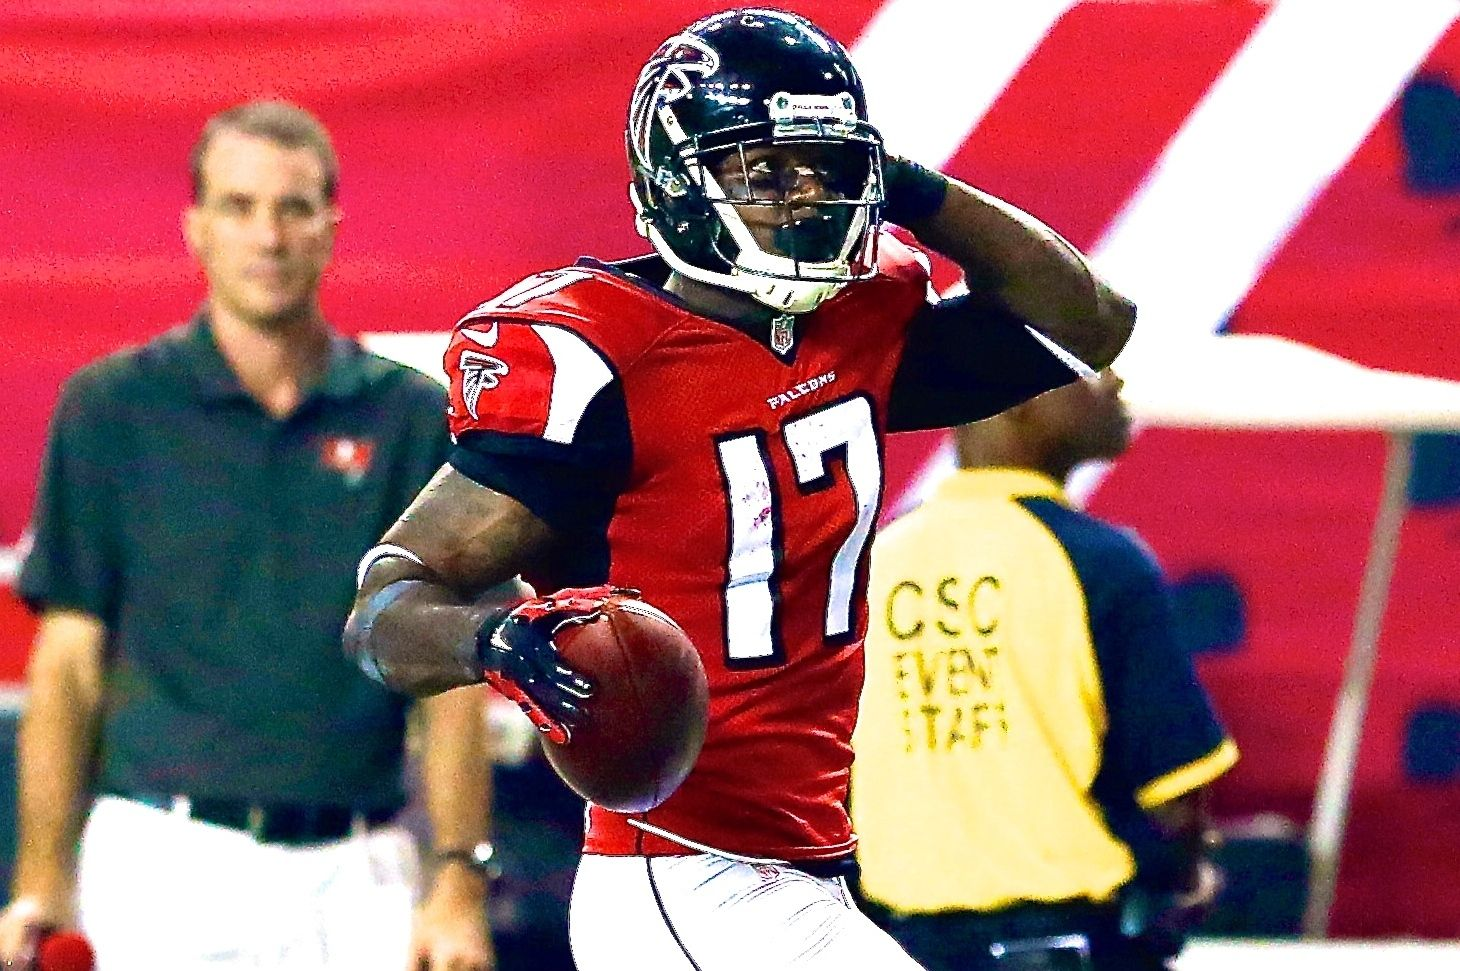 Devin Hester Breaks Deion Sanders Career Record For Return Touchdowns Devin Hester Wide Receiver Atlanta Falcons